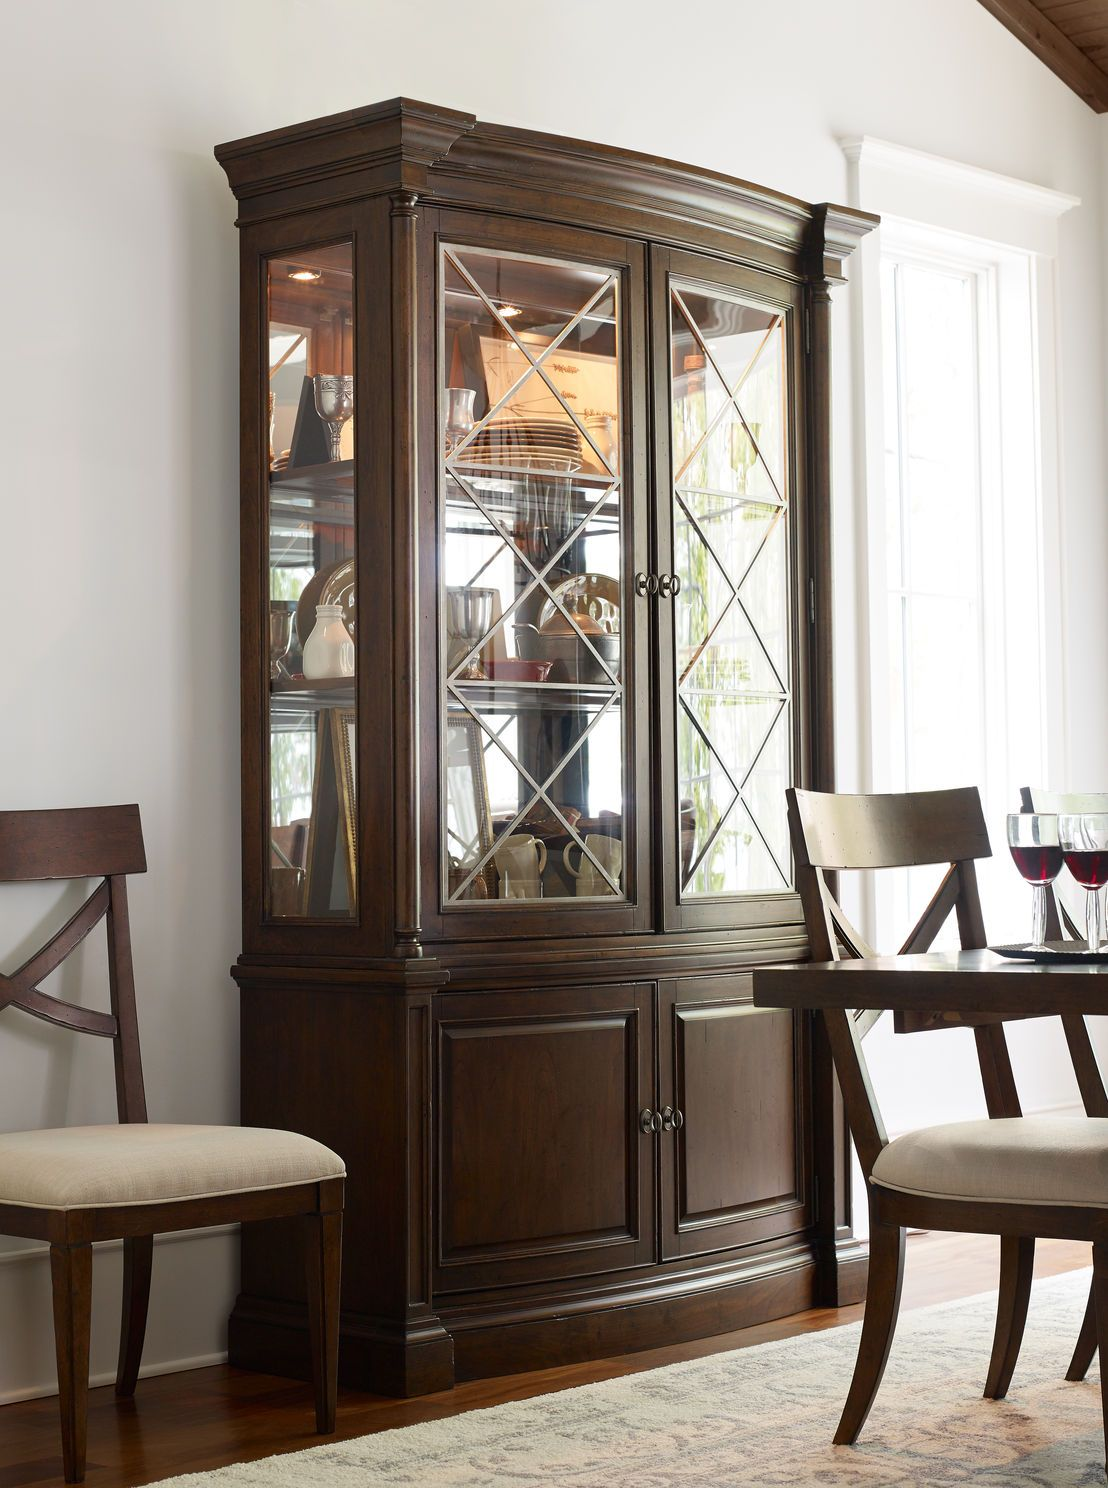 Rachael Ray Home: The Upstate Collection   Design by GAHS ...